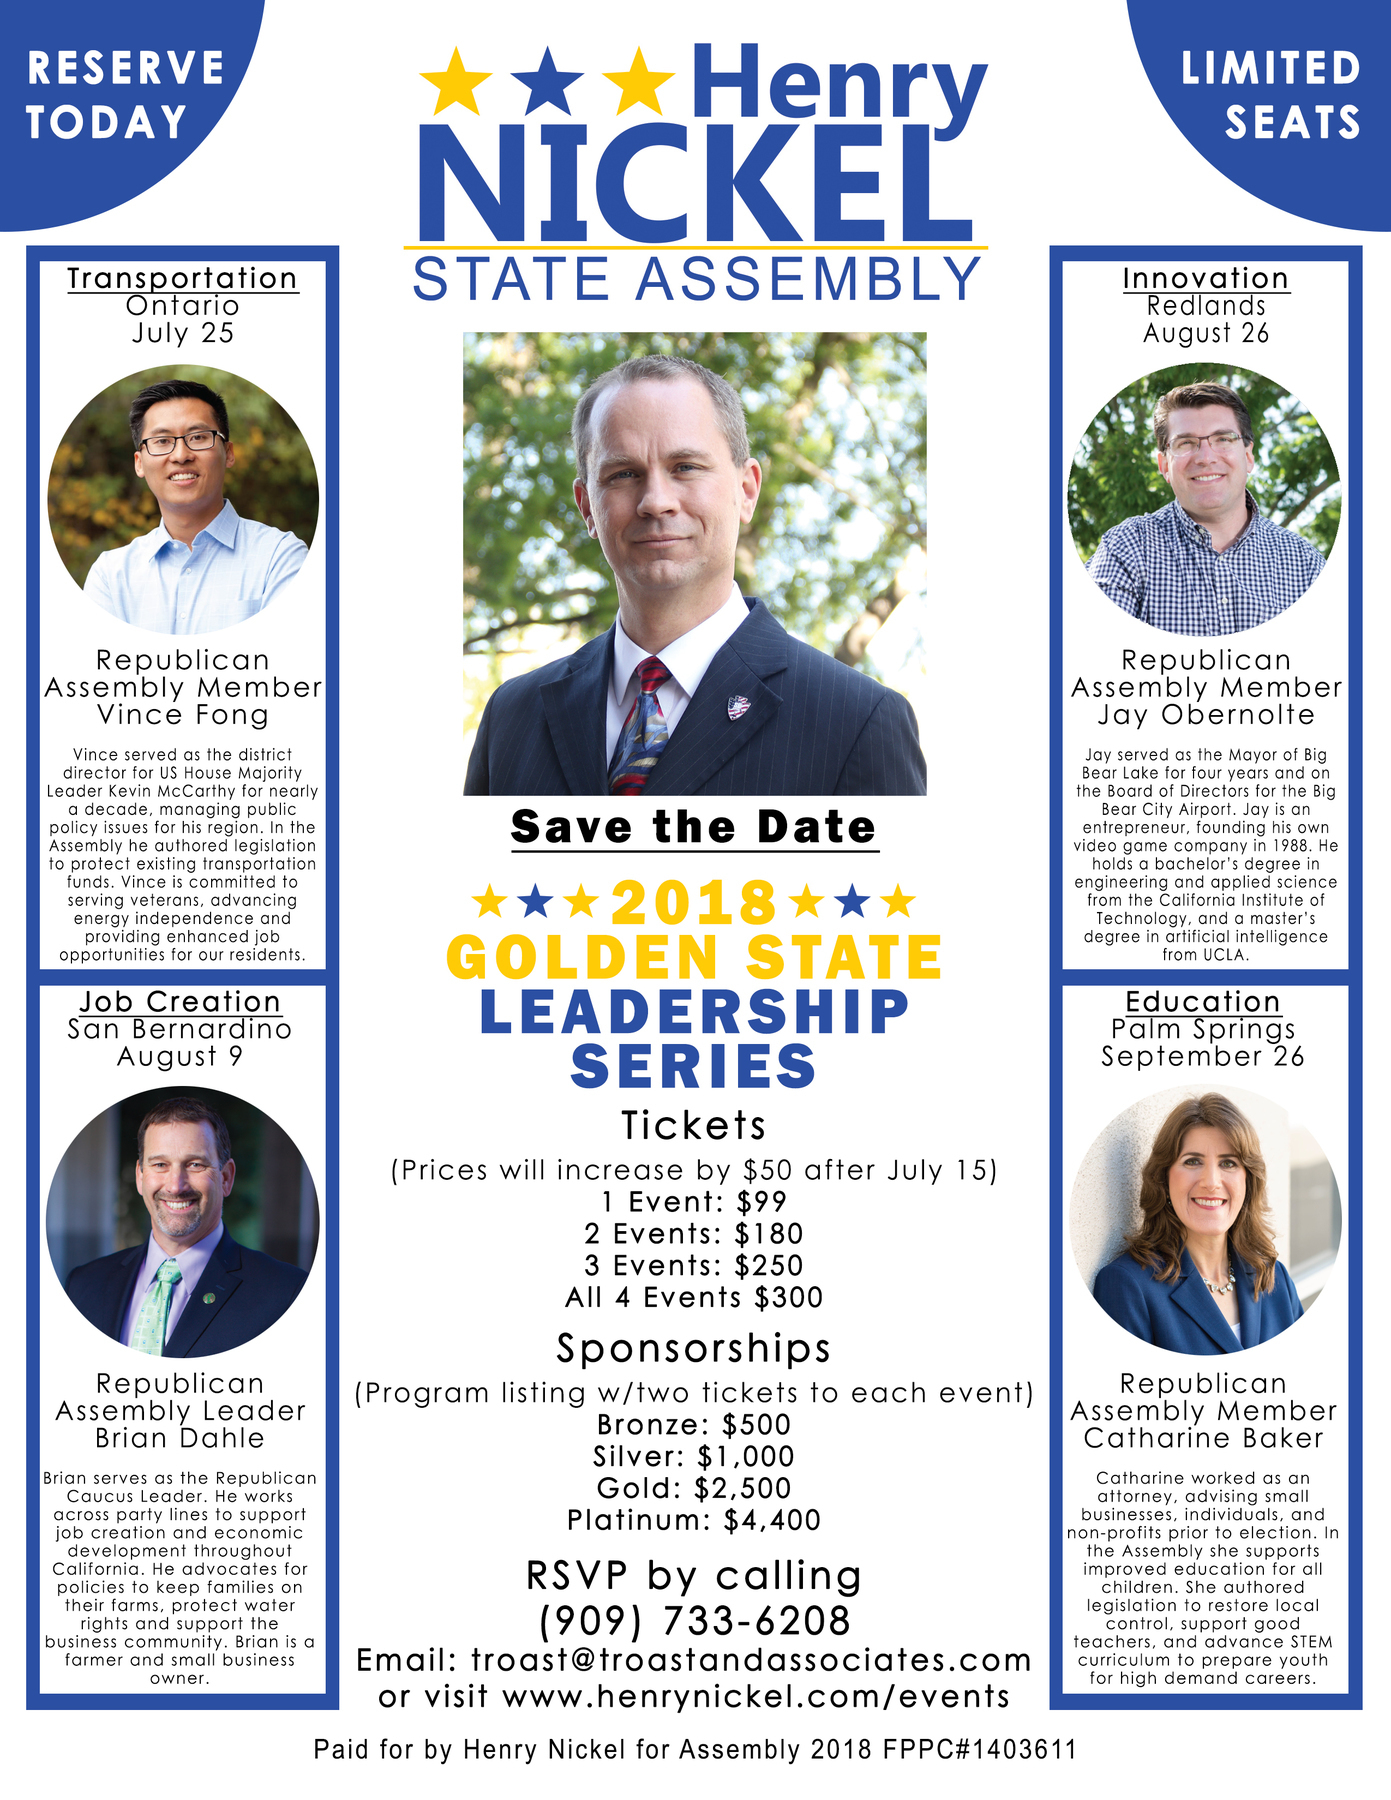 Henry Nickel for Assembly 2018: 2018 Golden State Leadership Series